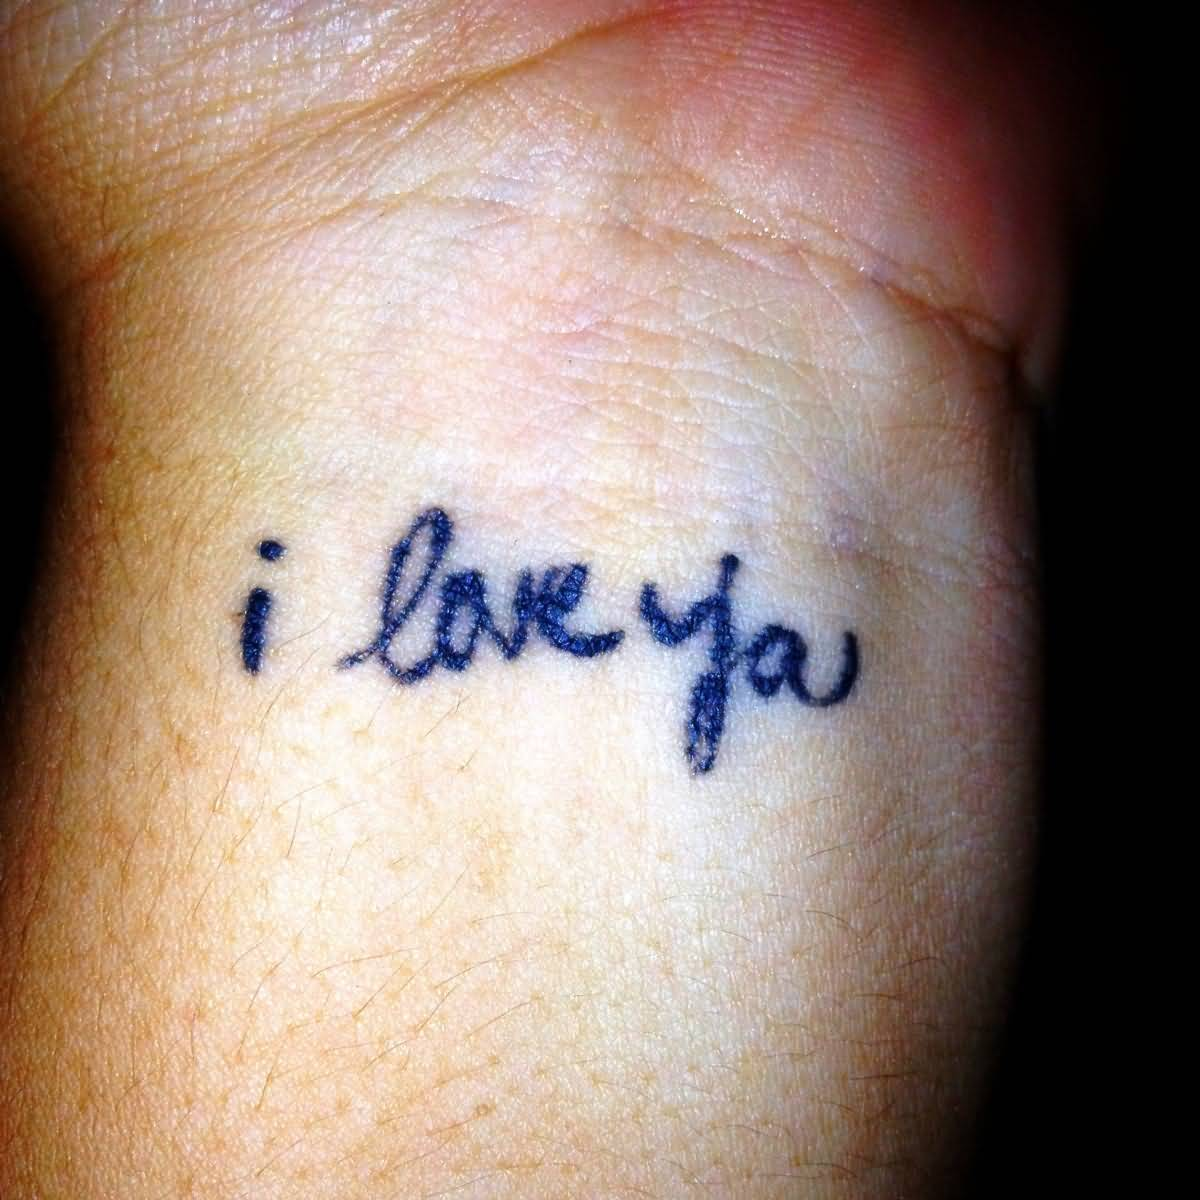 Sweet Love Wording Tattoo On Wrist